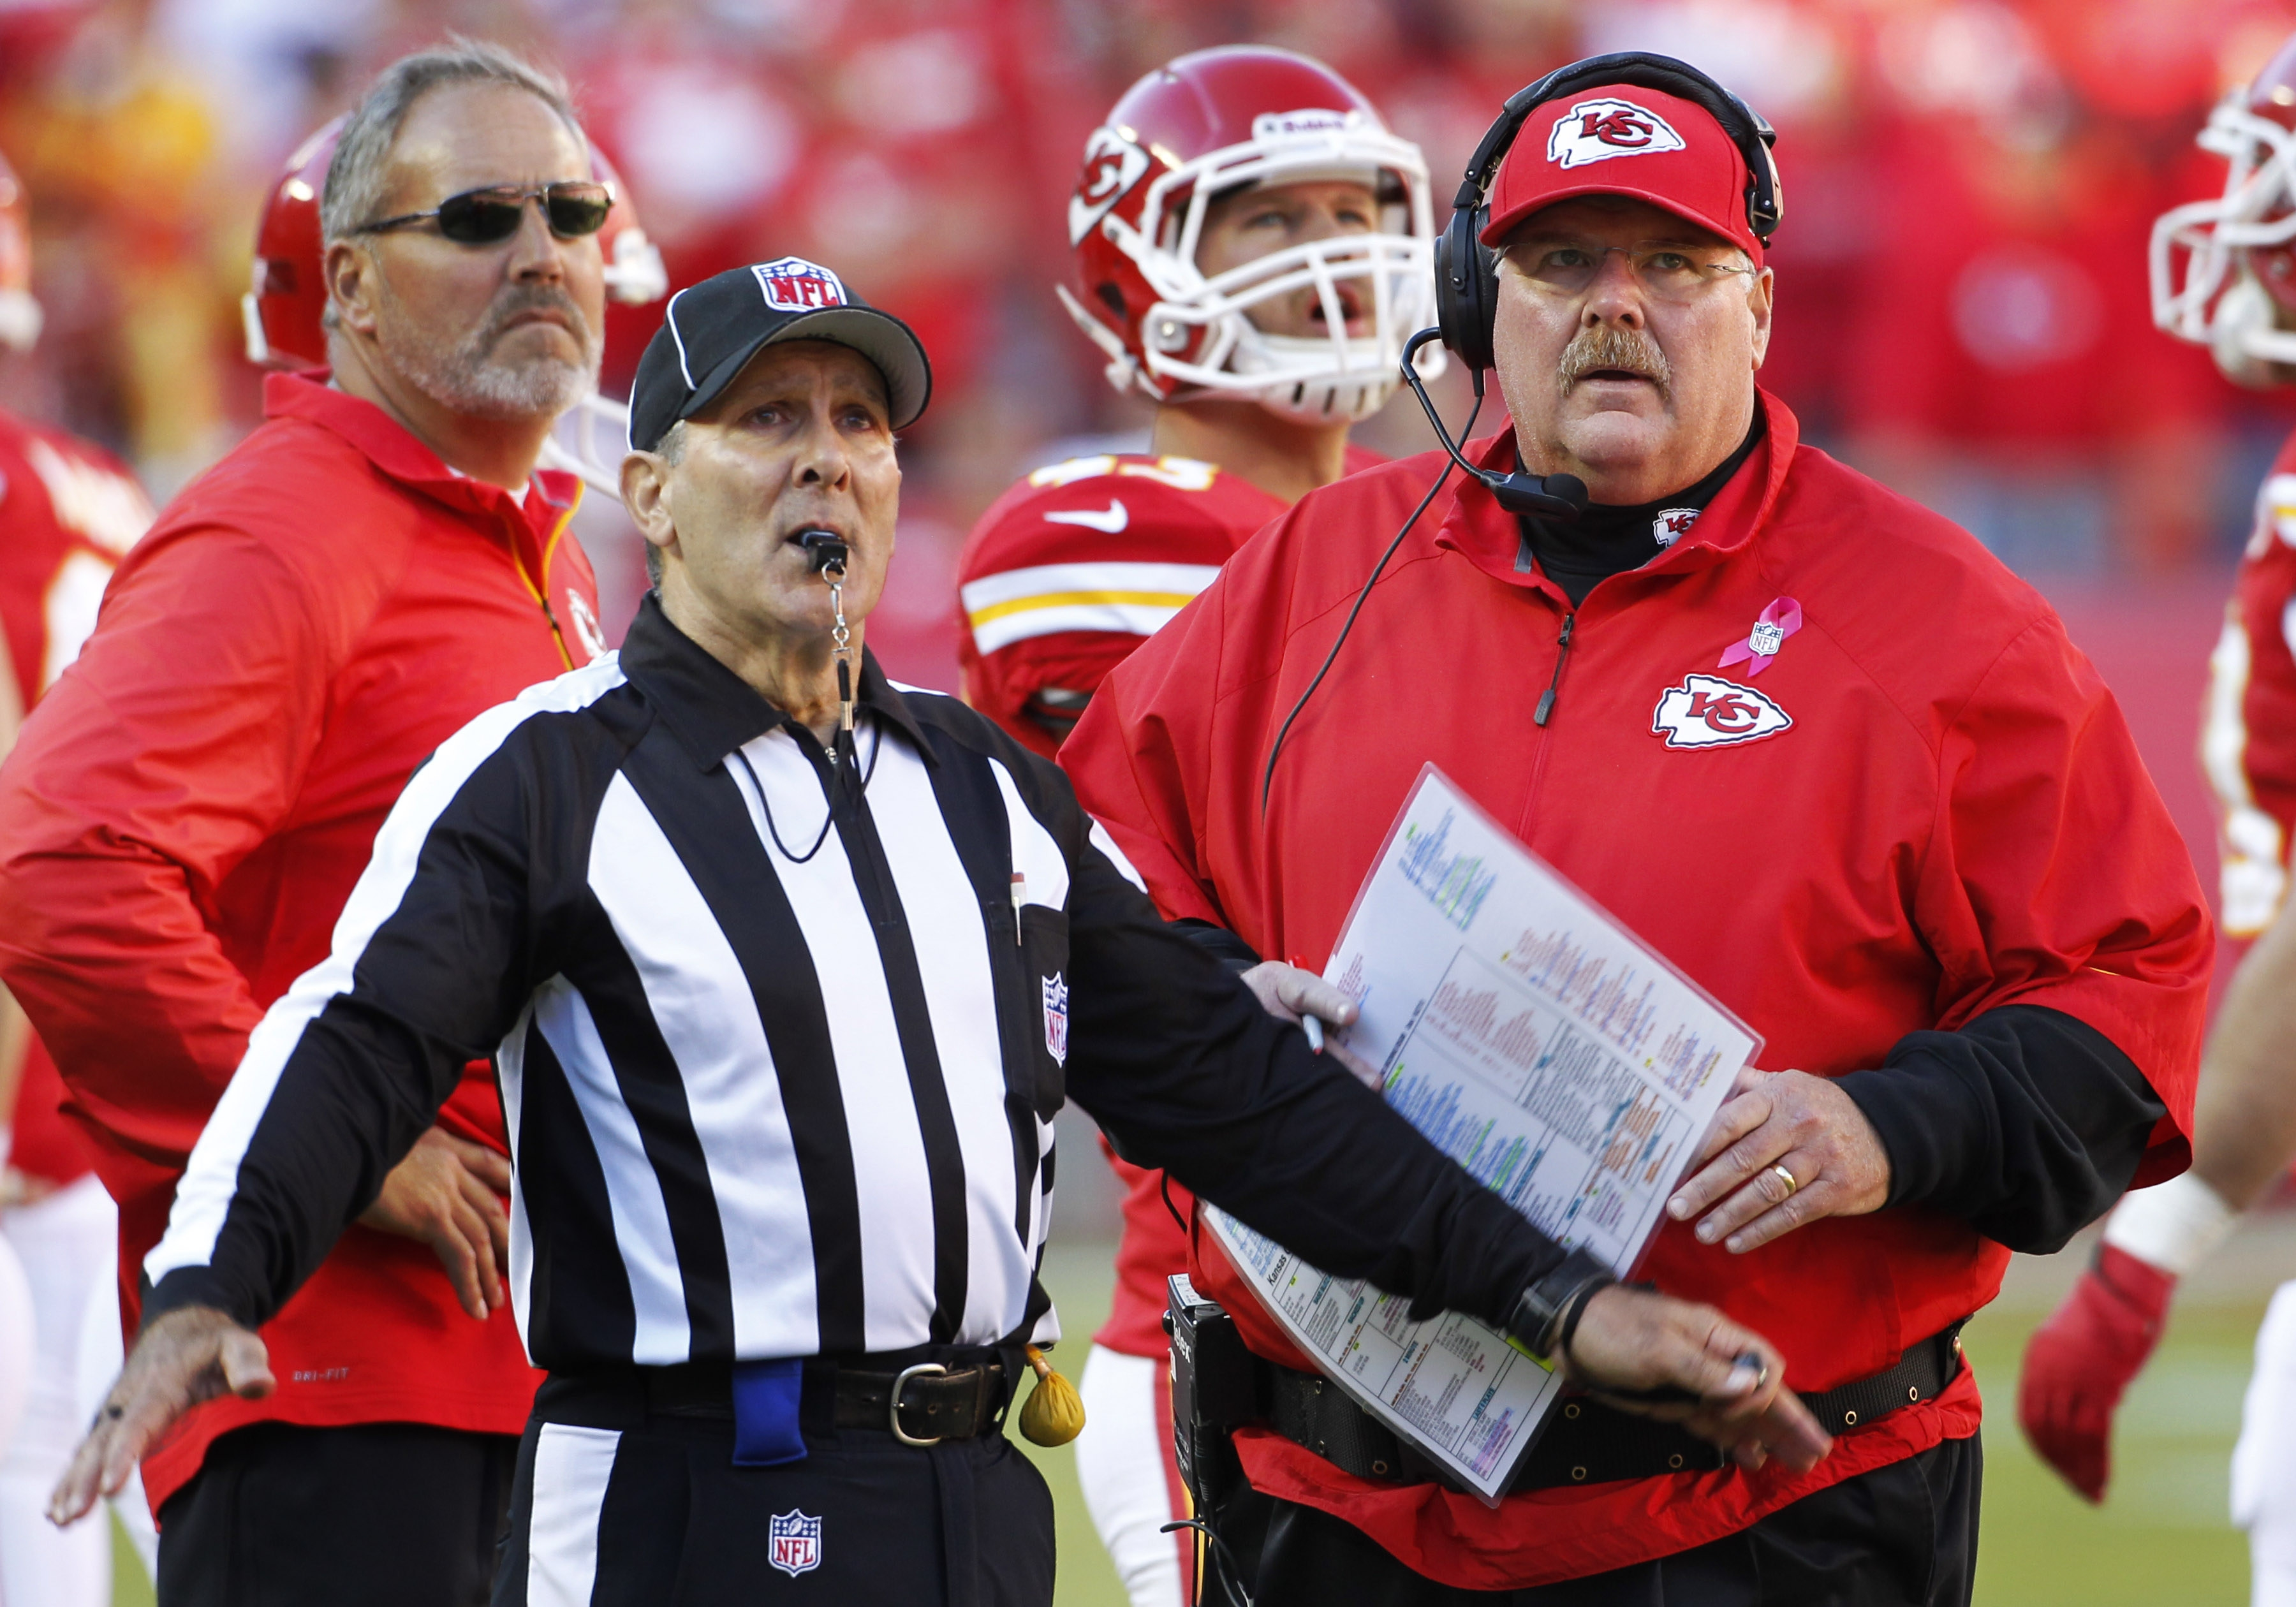 Andy Reid has coached the Chiefs to 8-0 this season.